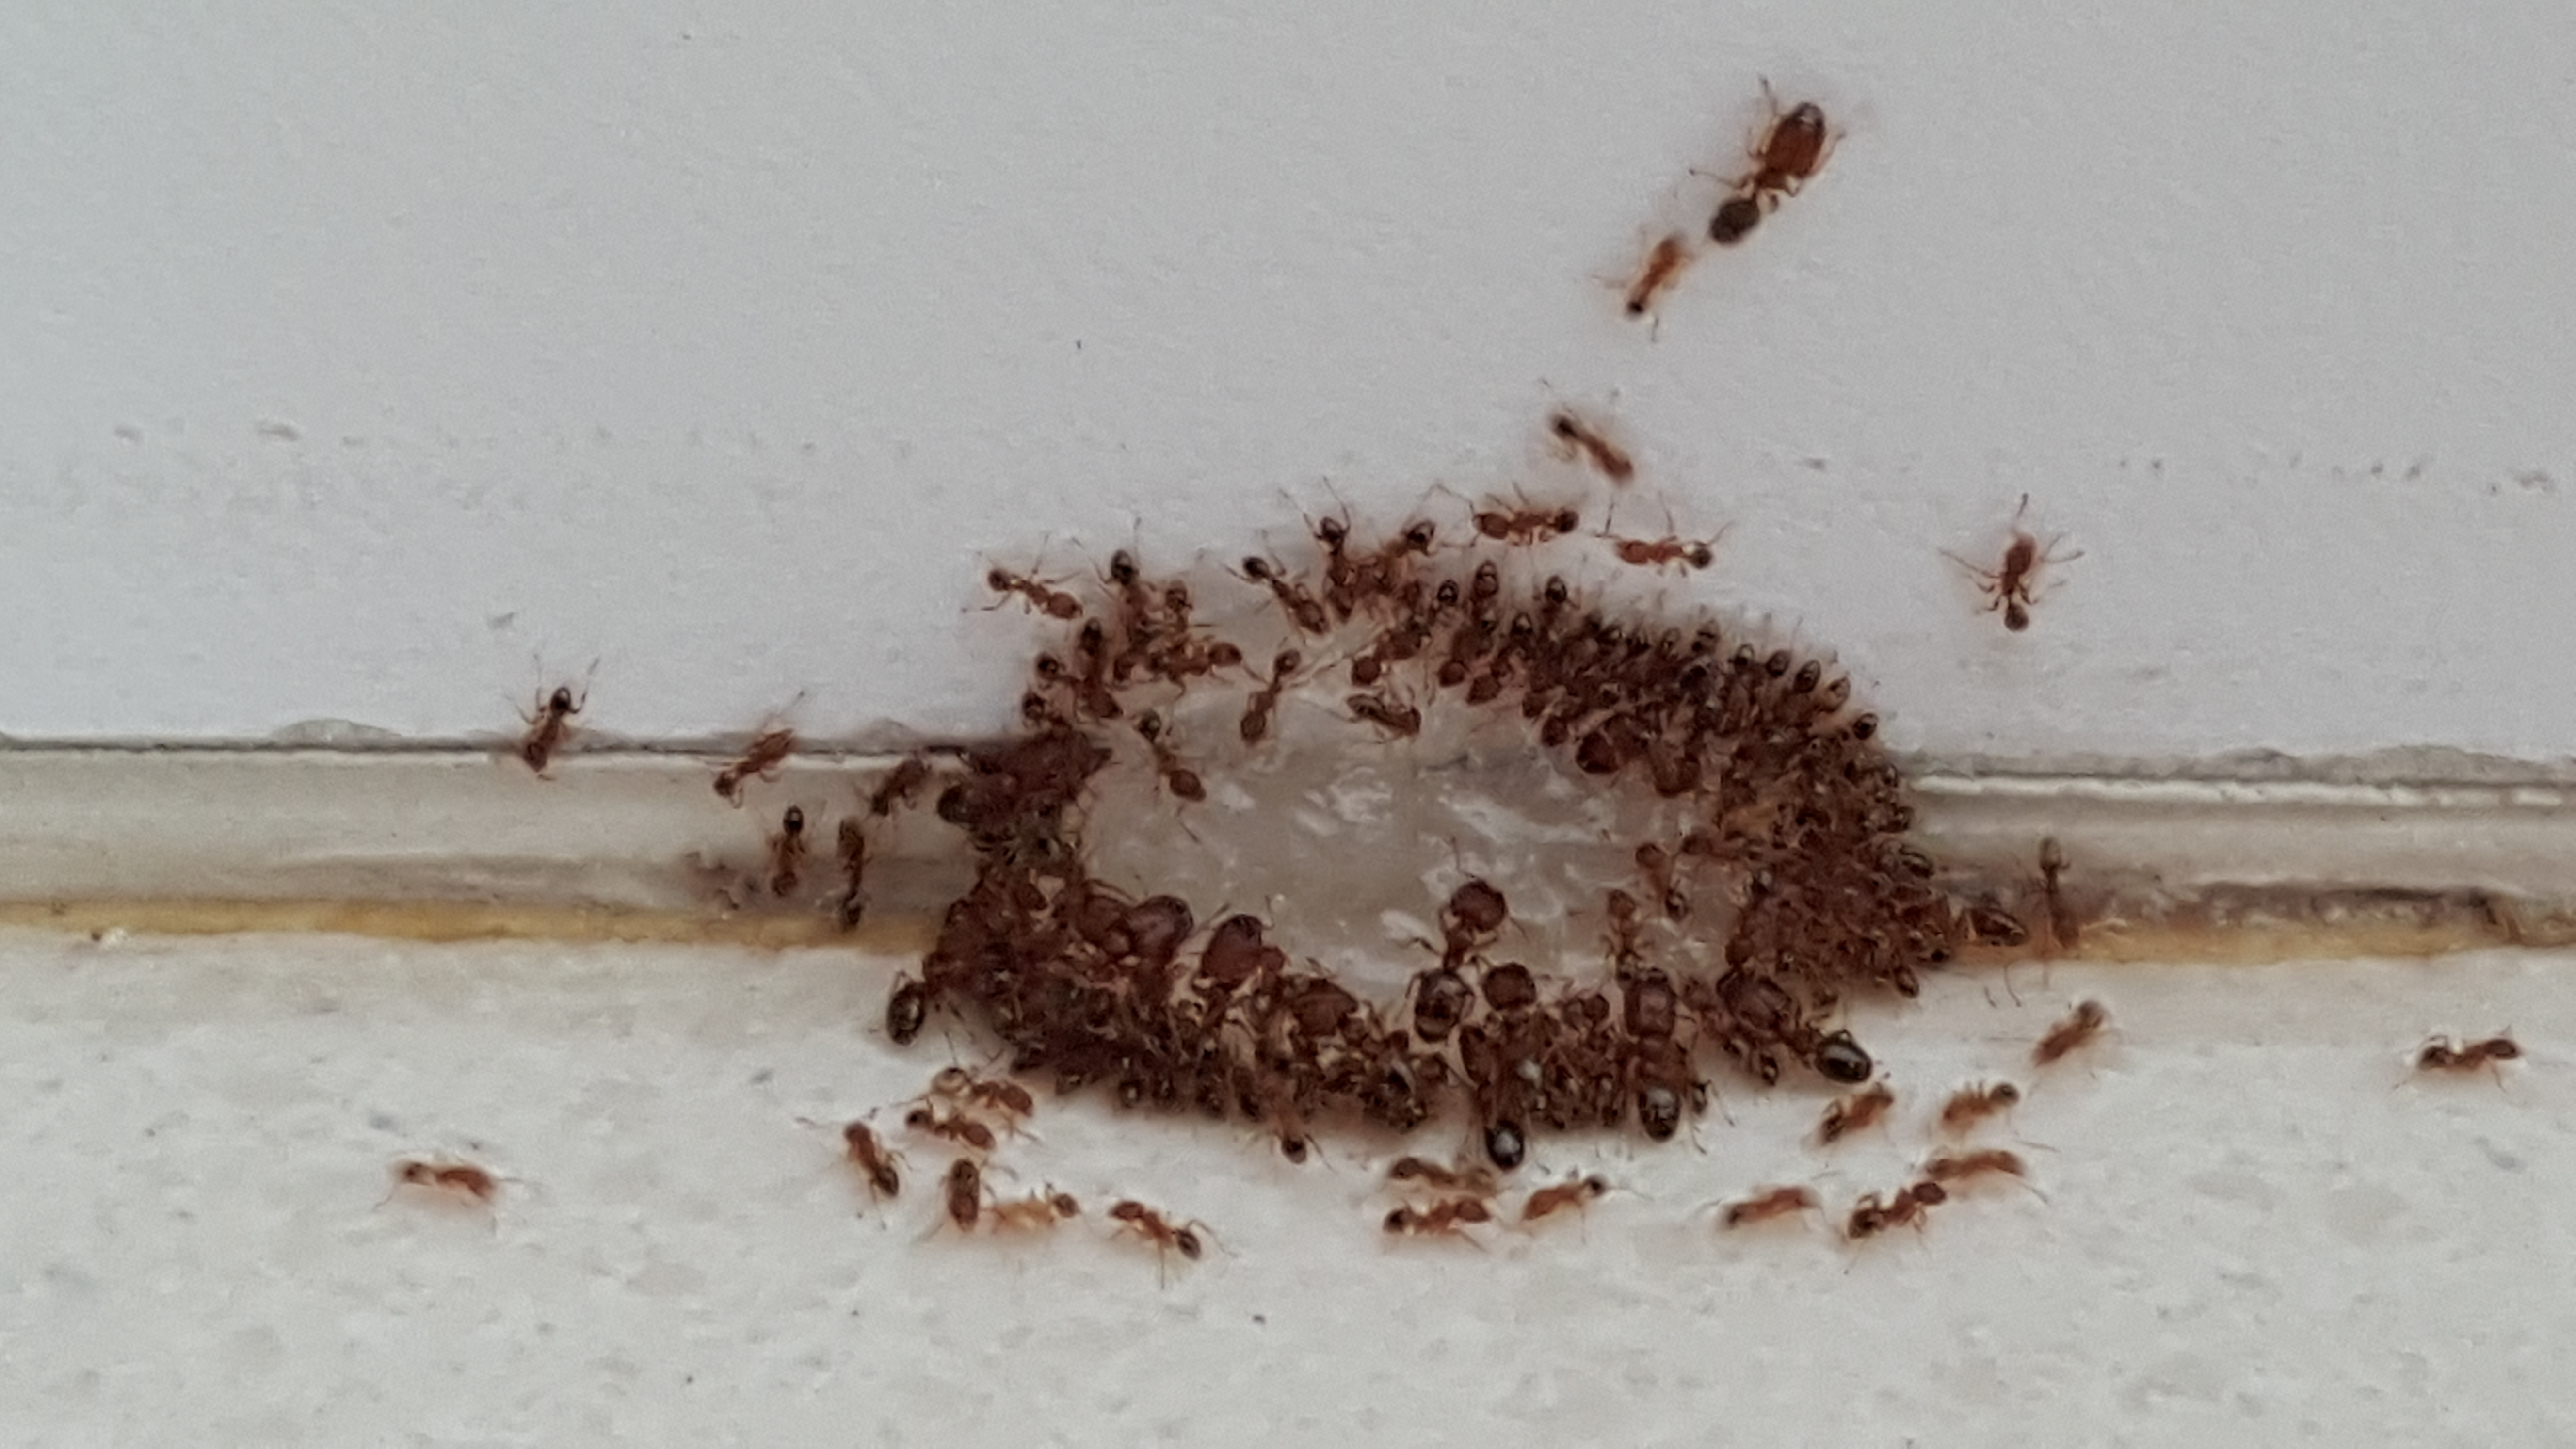 Ants Control Singapore How To Get Rid Of Ants